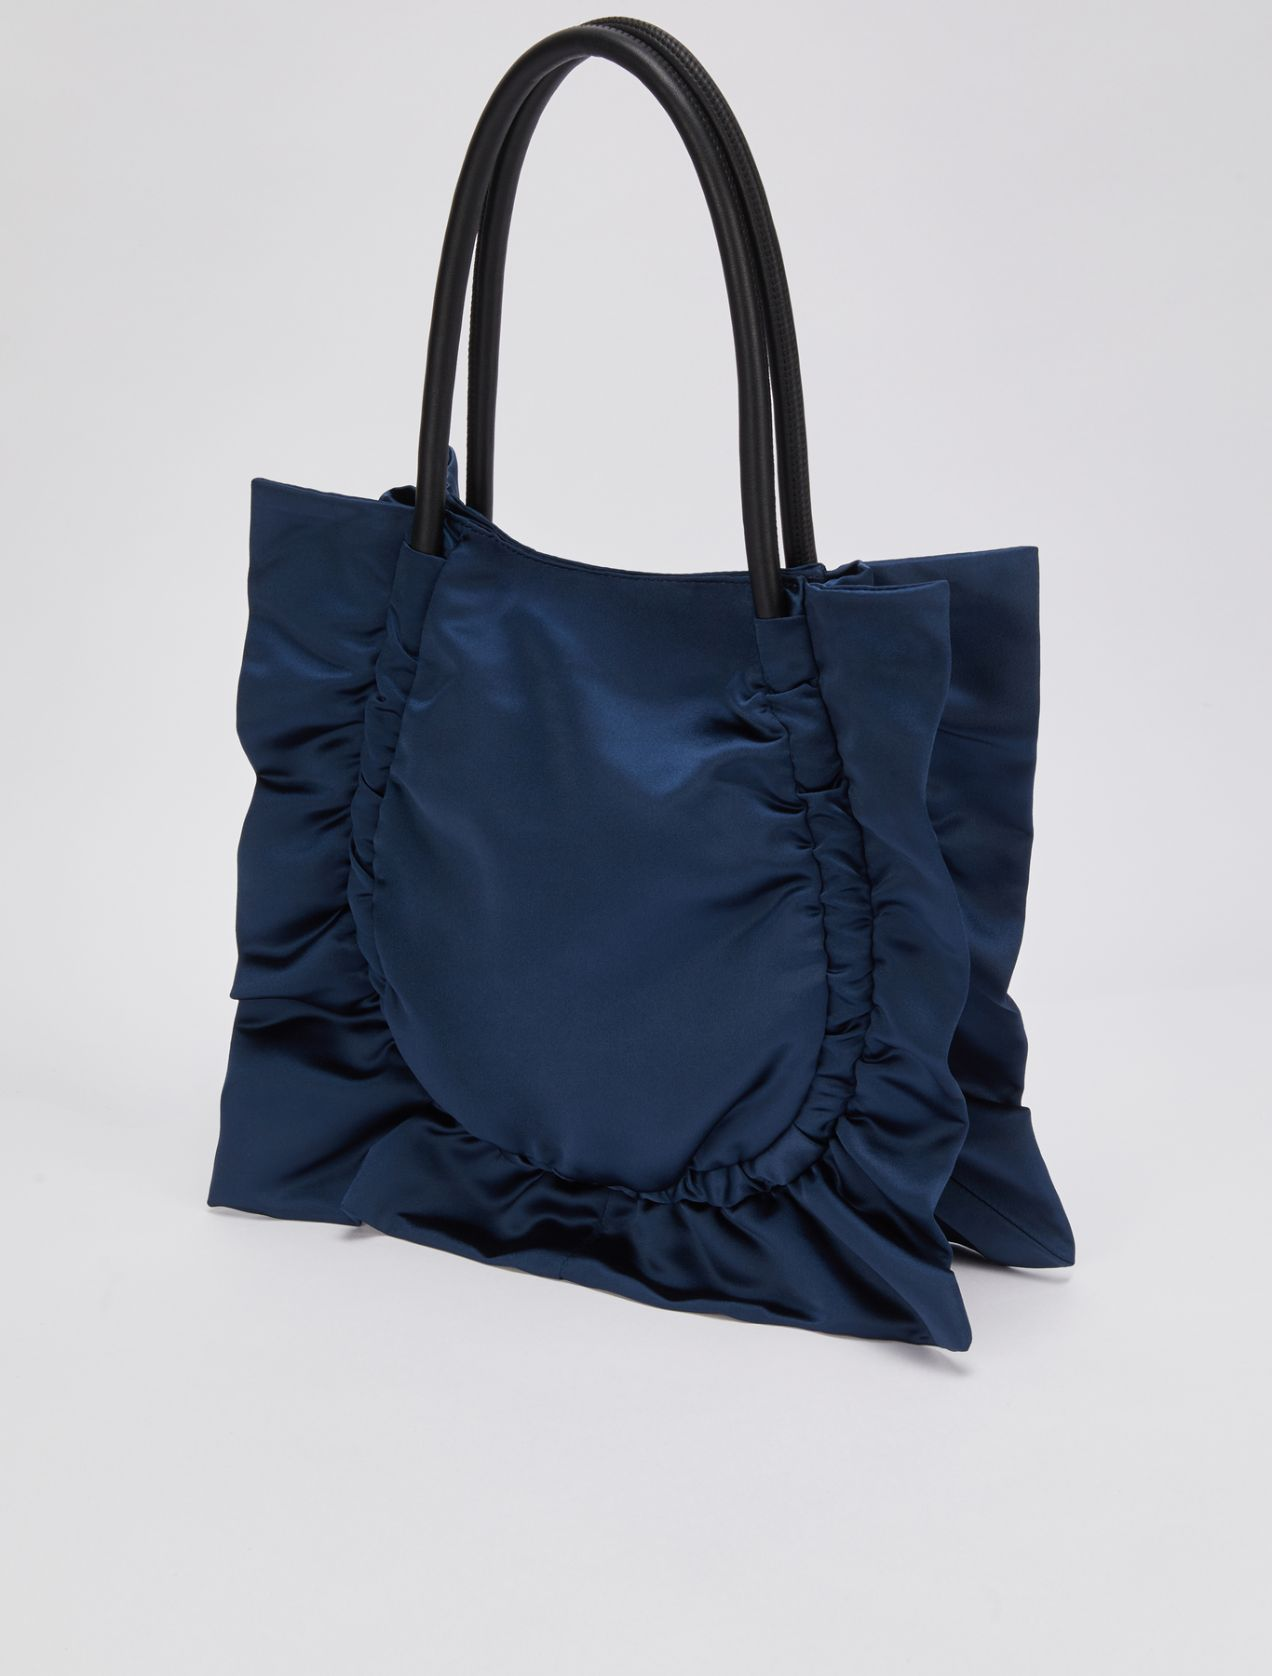 NUDIMINI Handbag navy blue 2